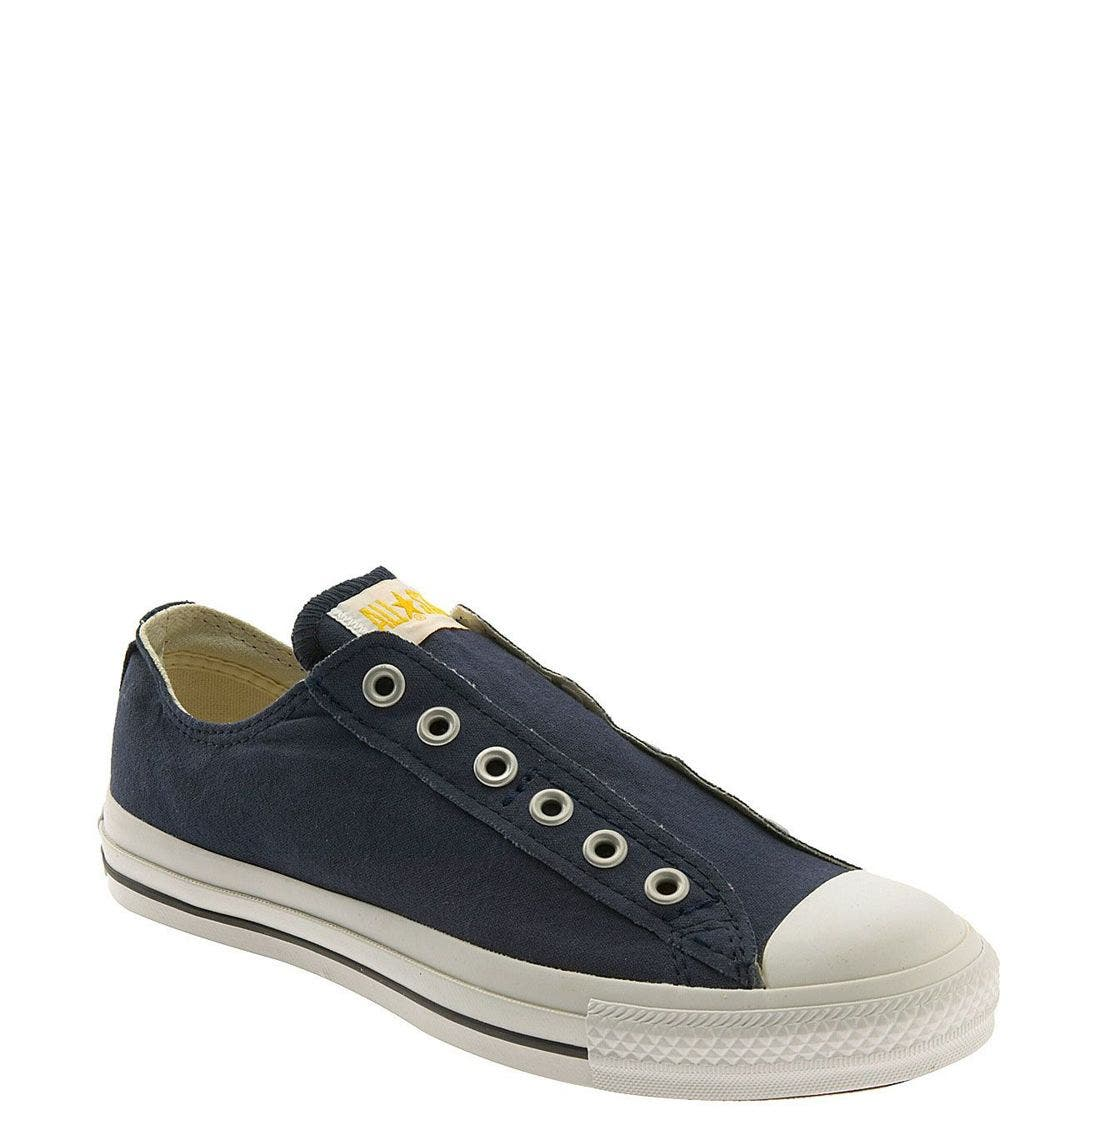 Alternate Image 1 Selected - Converse Chuck Taylor® Low Slip-On Sneaker (Women)